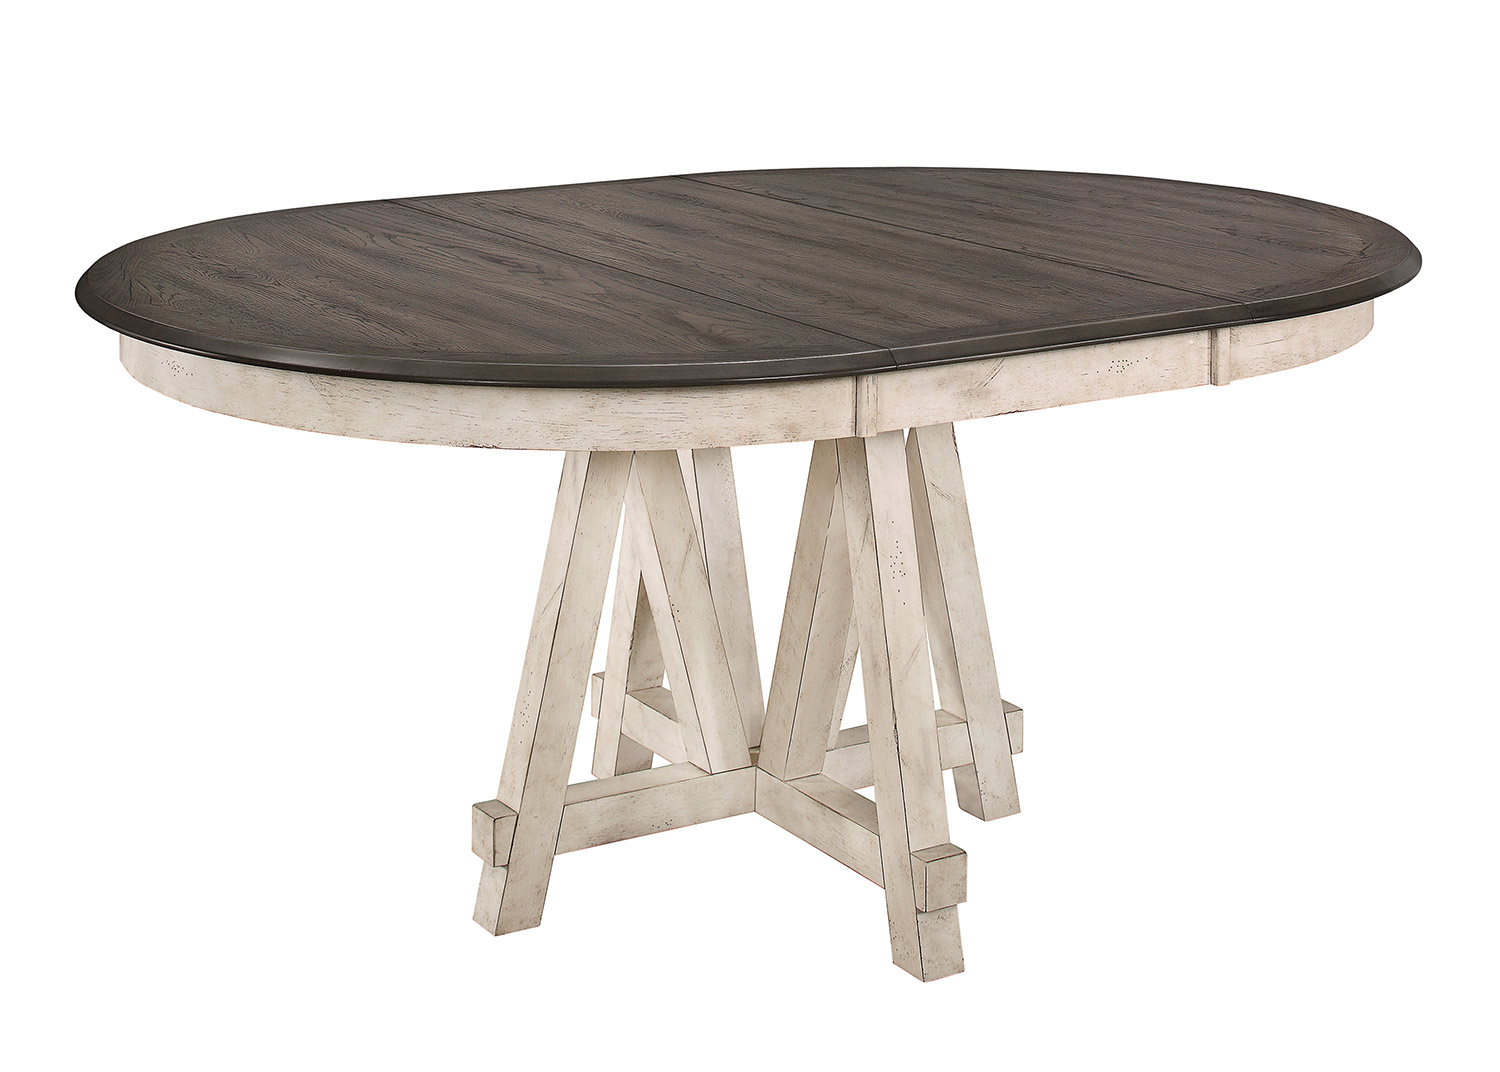 Homelegance Clover Round/Oval Dining Table - Rustic Gray